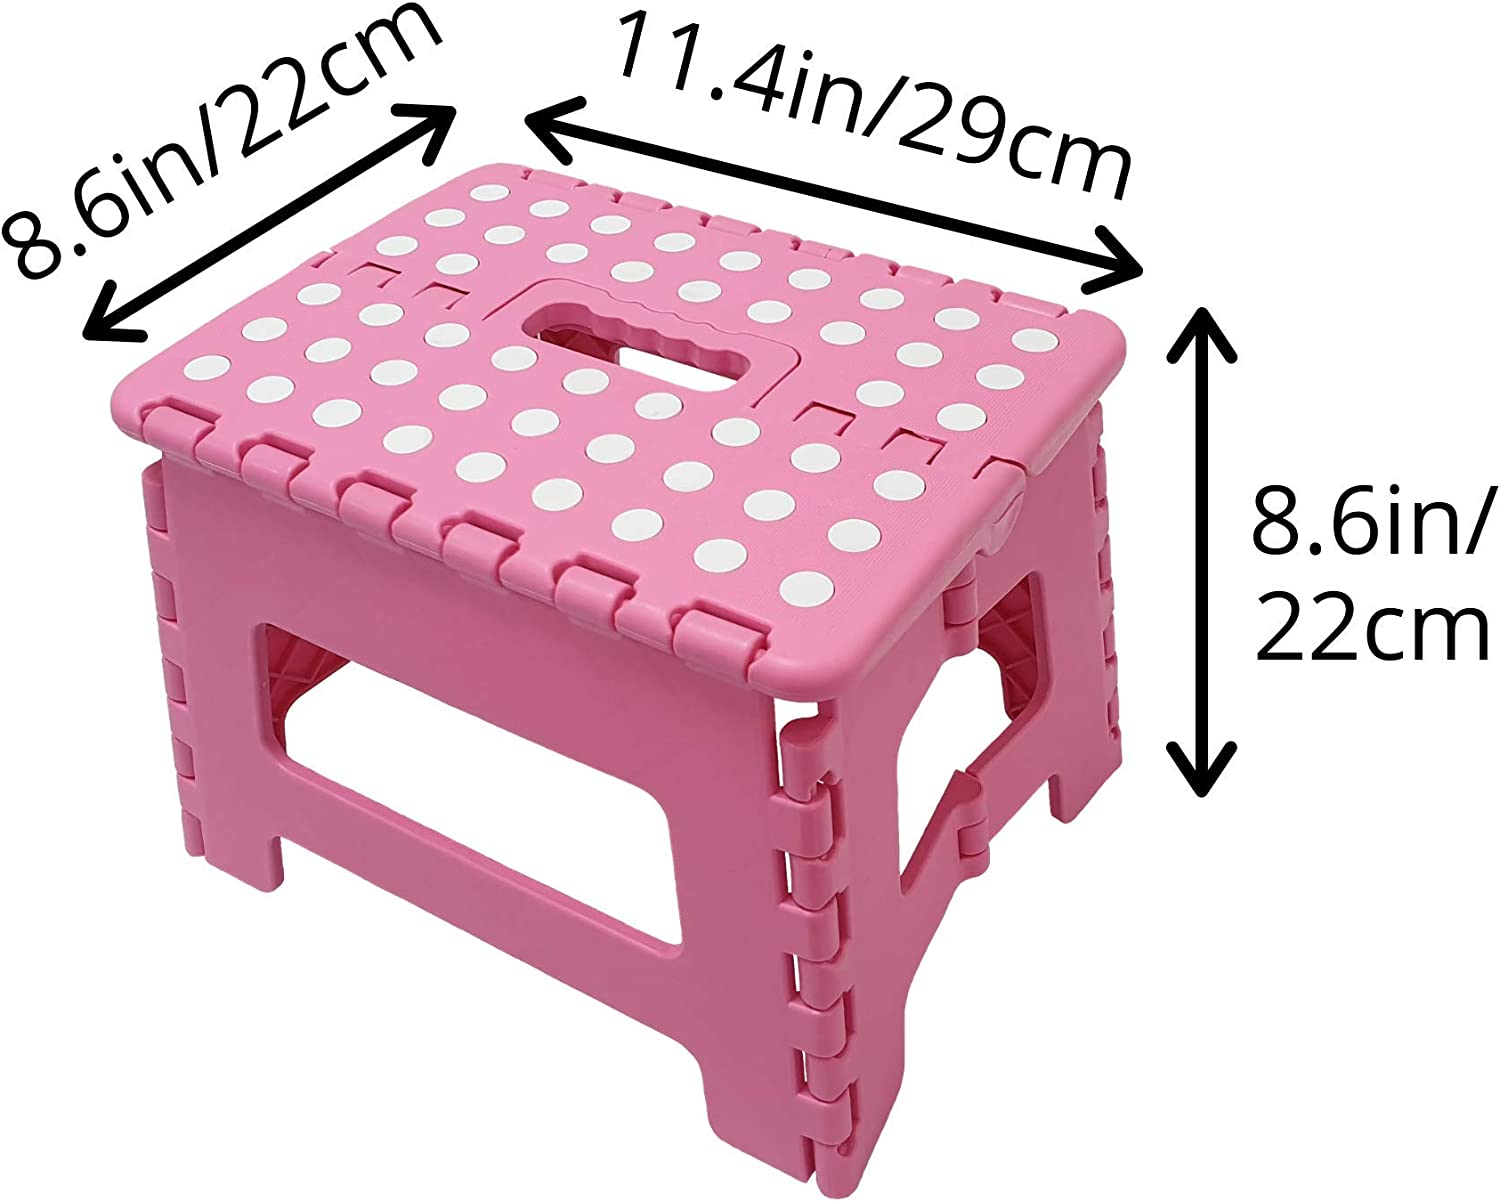 Great for Bedroom Kitchen Bathroom Macro Giant Folding Step Stool Set of 4 Kids or Adults. Black Color Footstool